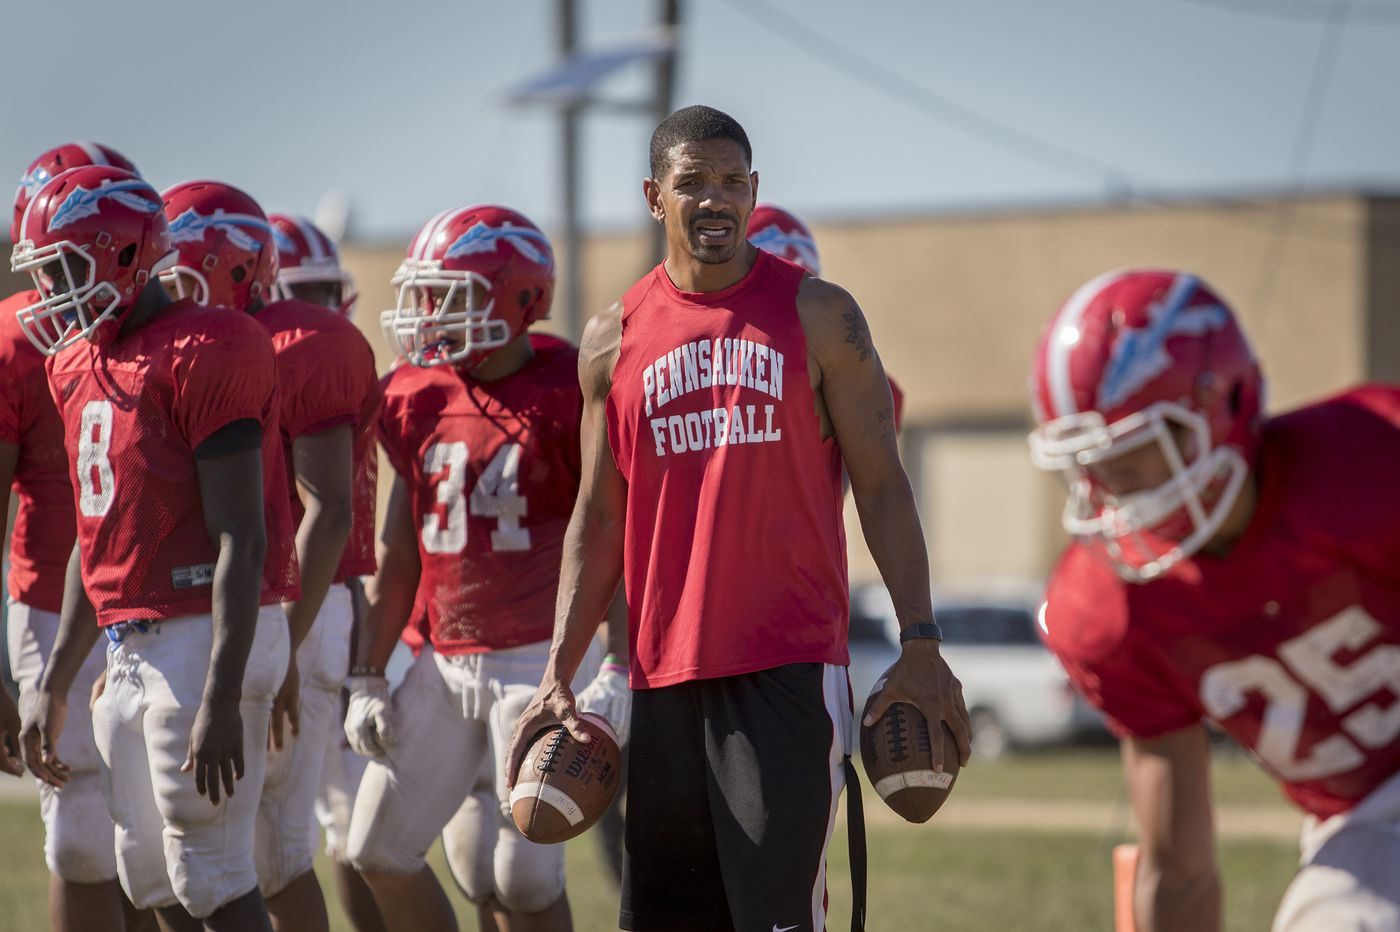 Pennsauken looks to push back to prominence | Training camp preview